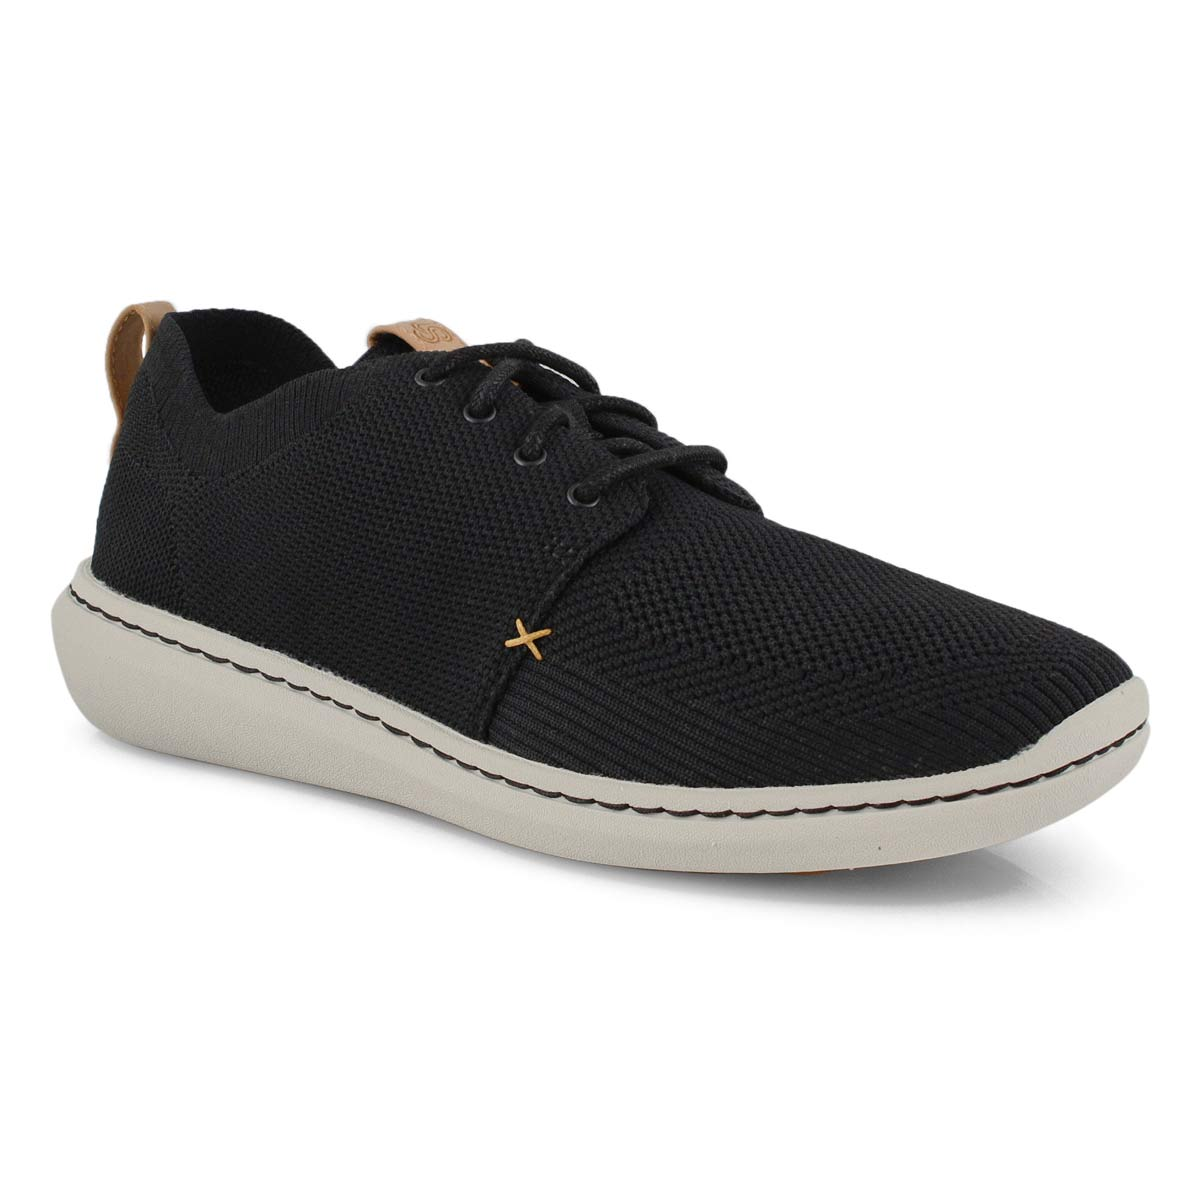 Mns Step Urban Mix black casual shoe